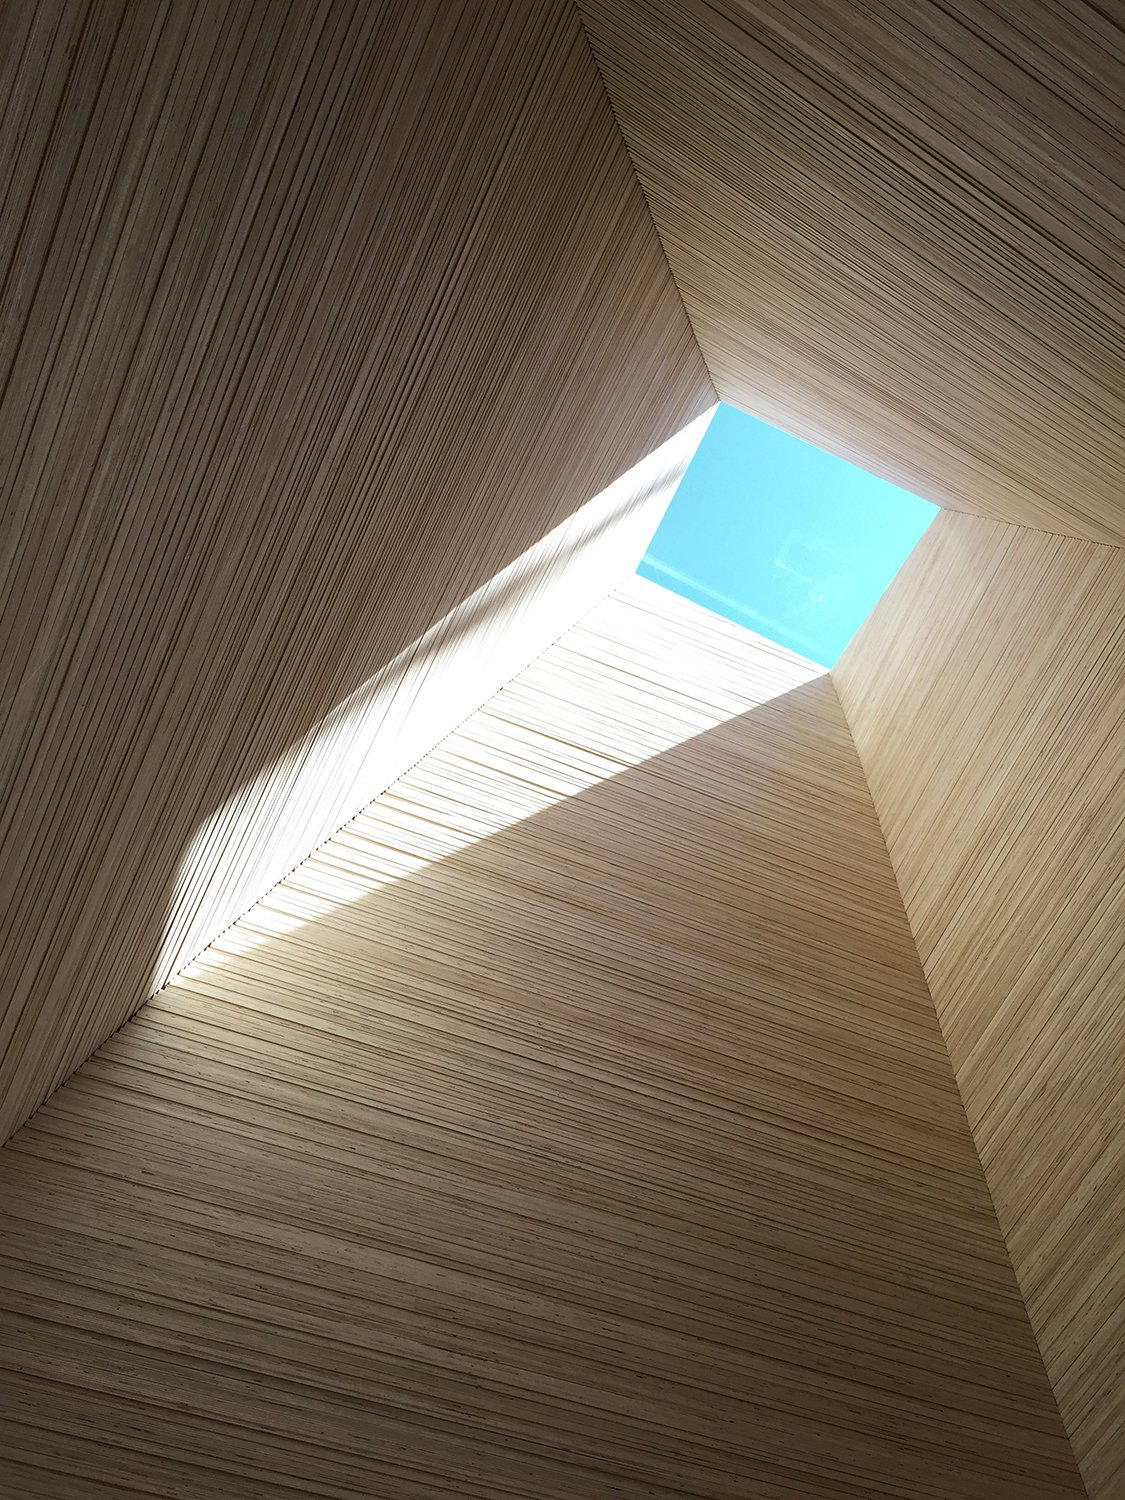 """Windows and Skylight At the entry looking upward towards a Velux skylight, a vertical """"sleeve"""" is made of stacked end grain plywood. The theme of vertical and horizontal architectural elements providing different environmental perspectives carries through to the rest of the home. Horizontal forms look out to the lake, while the vertical columns look up the sky.  Best Windows Photos from An Abstract New England Lake House That Sinks Into the Land"""